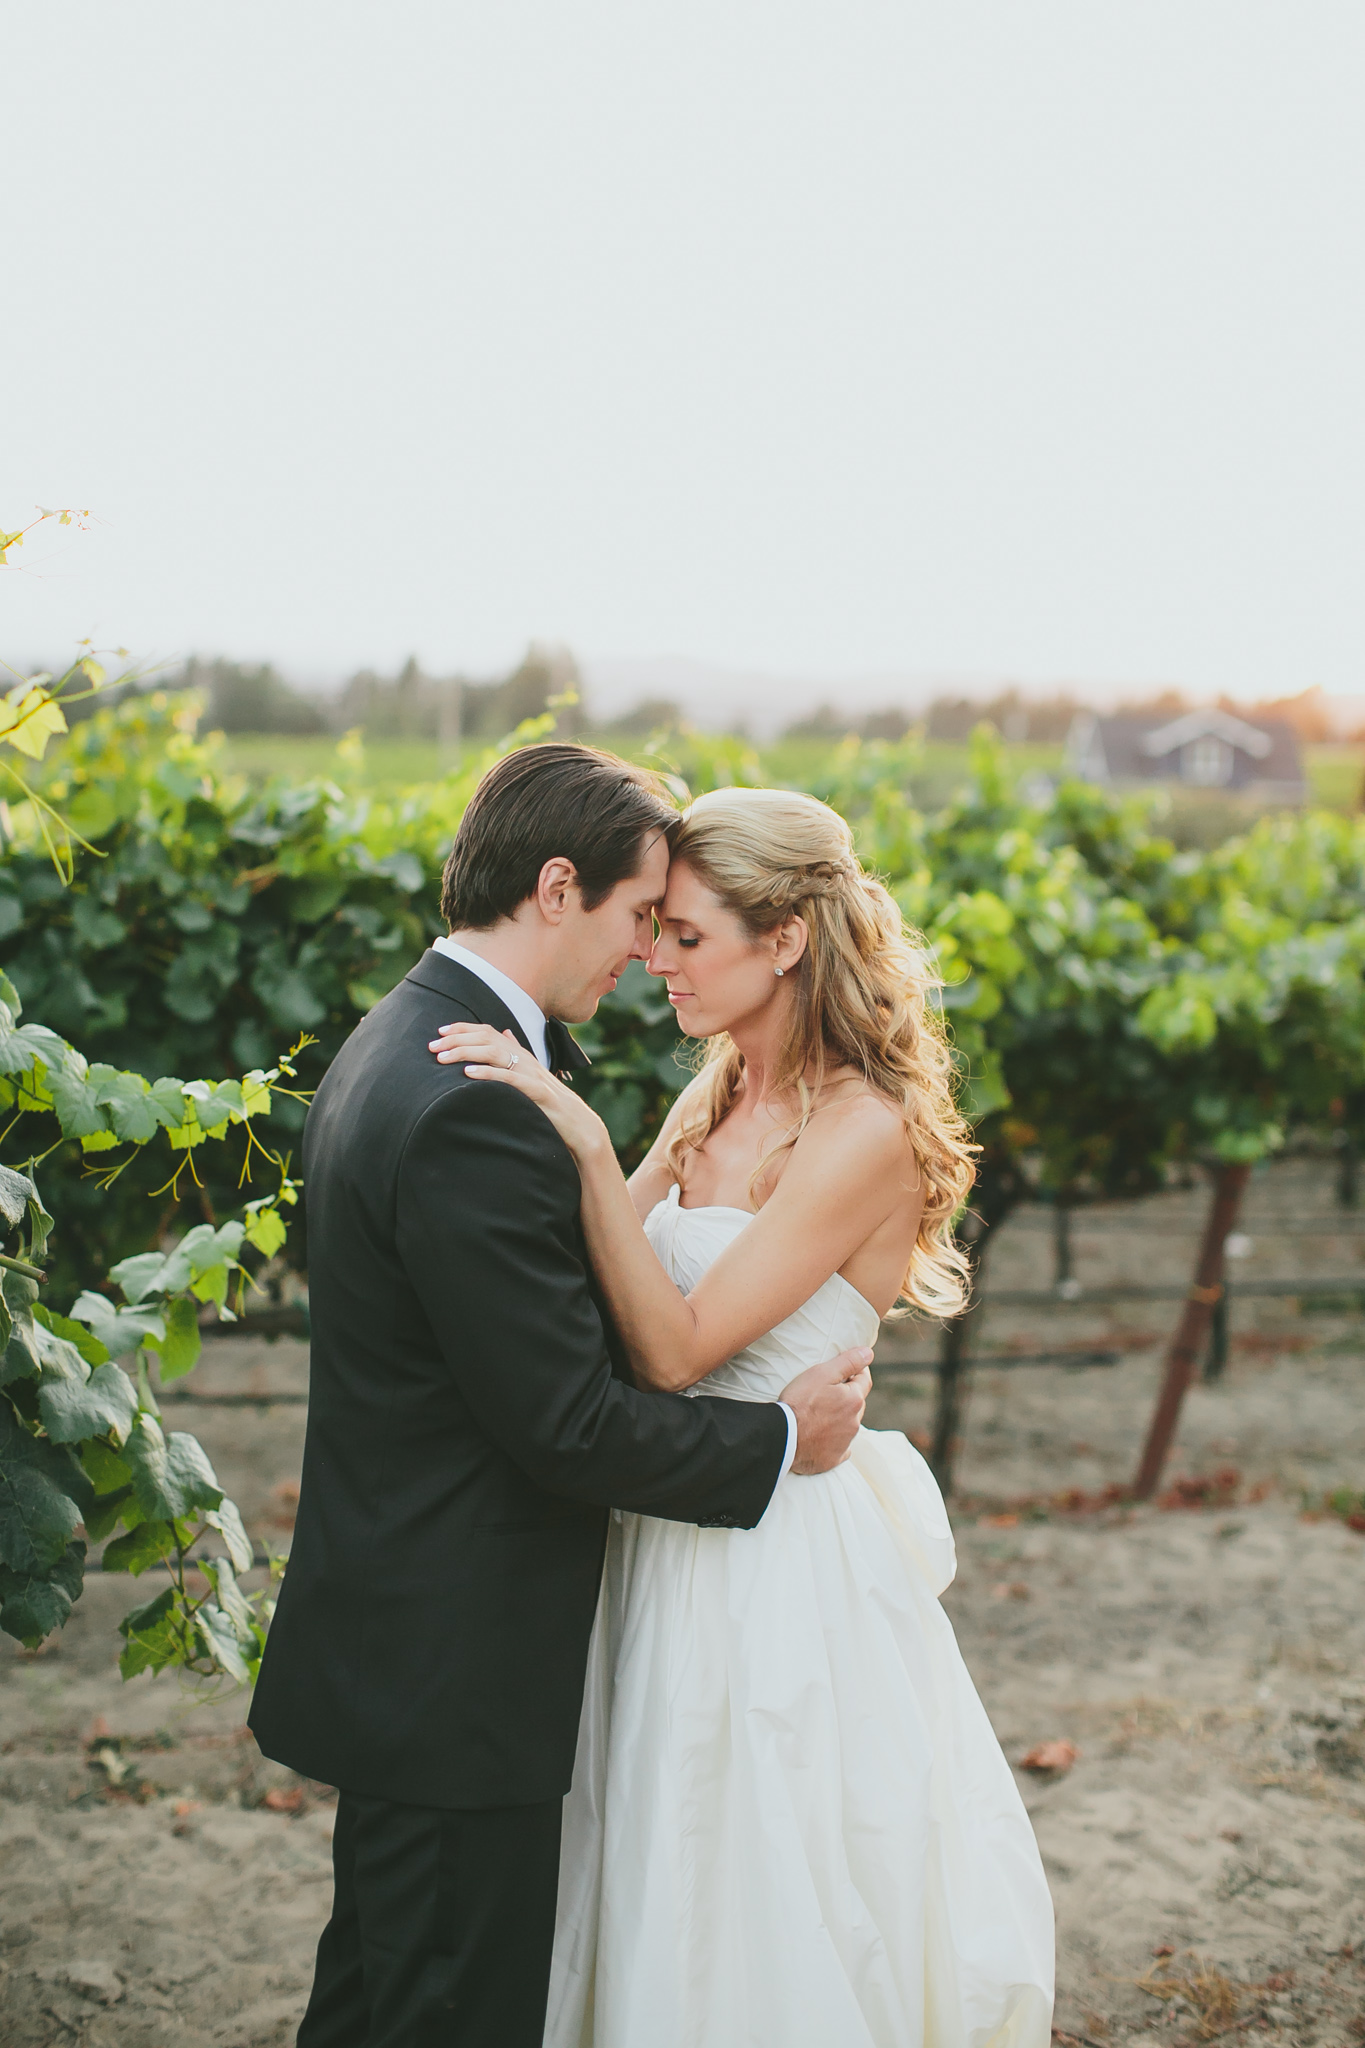 Emily+Nick-WED_BLOG-175